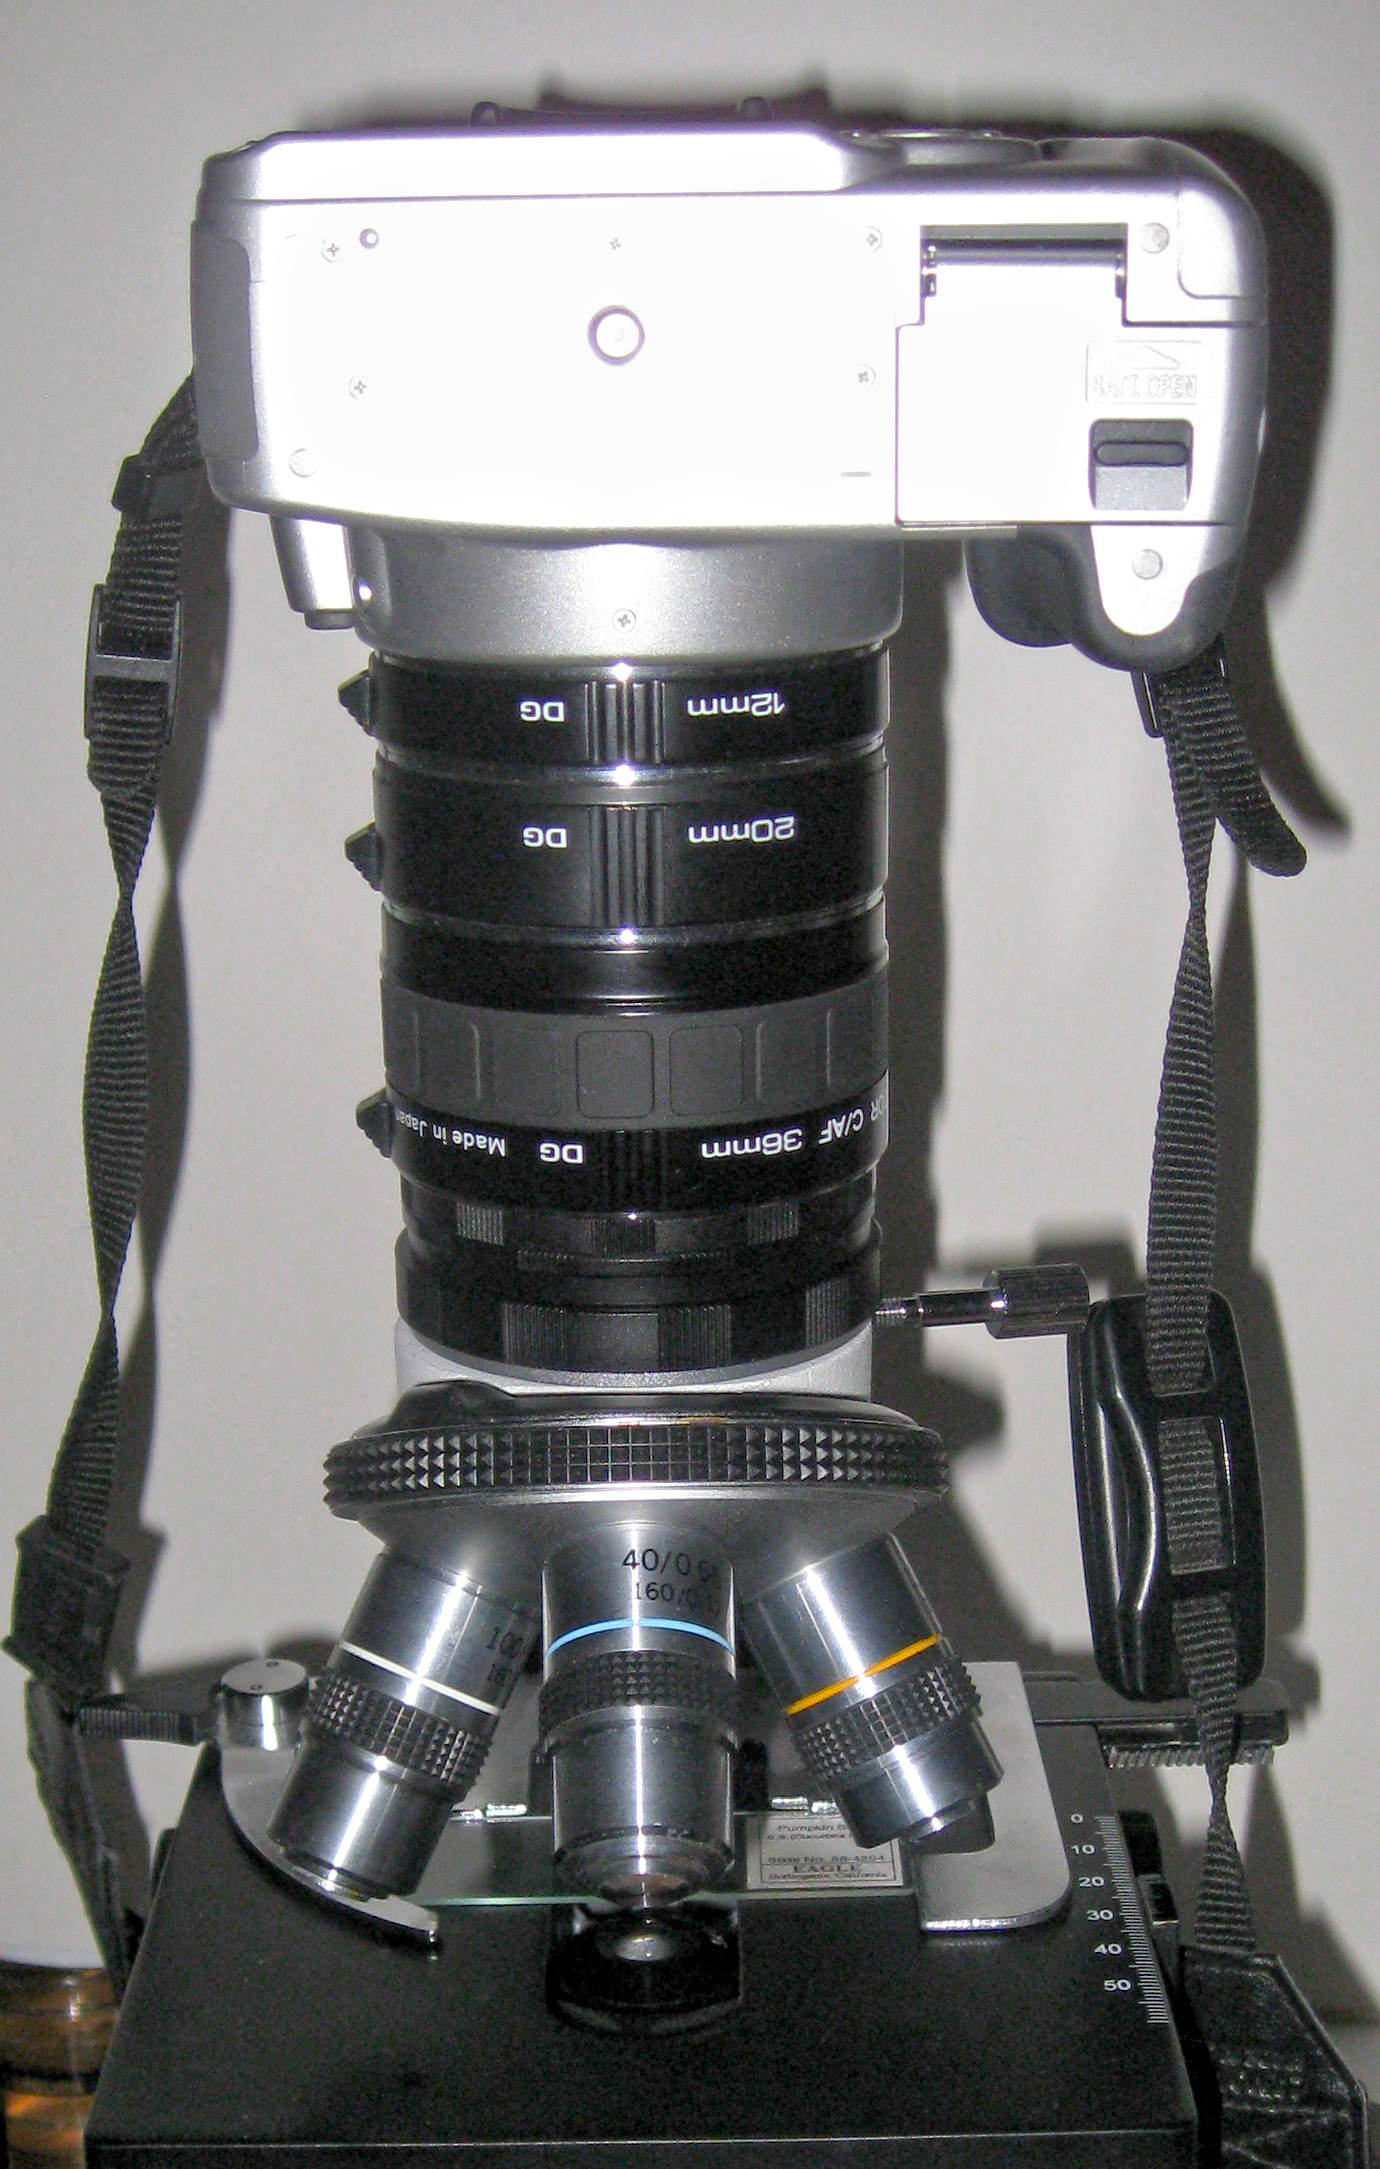 Canon on microscope with several extension tubes